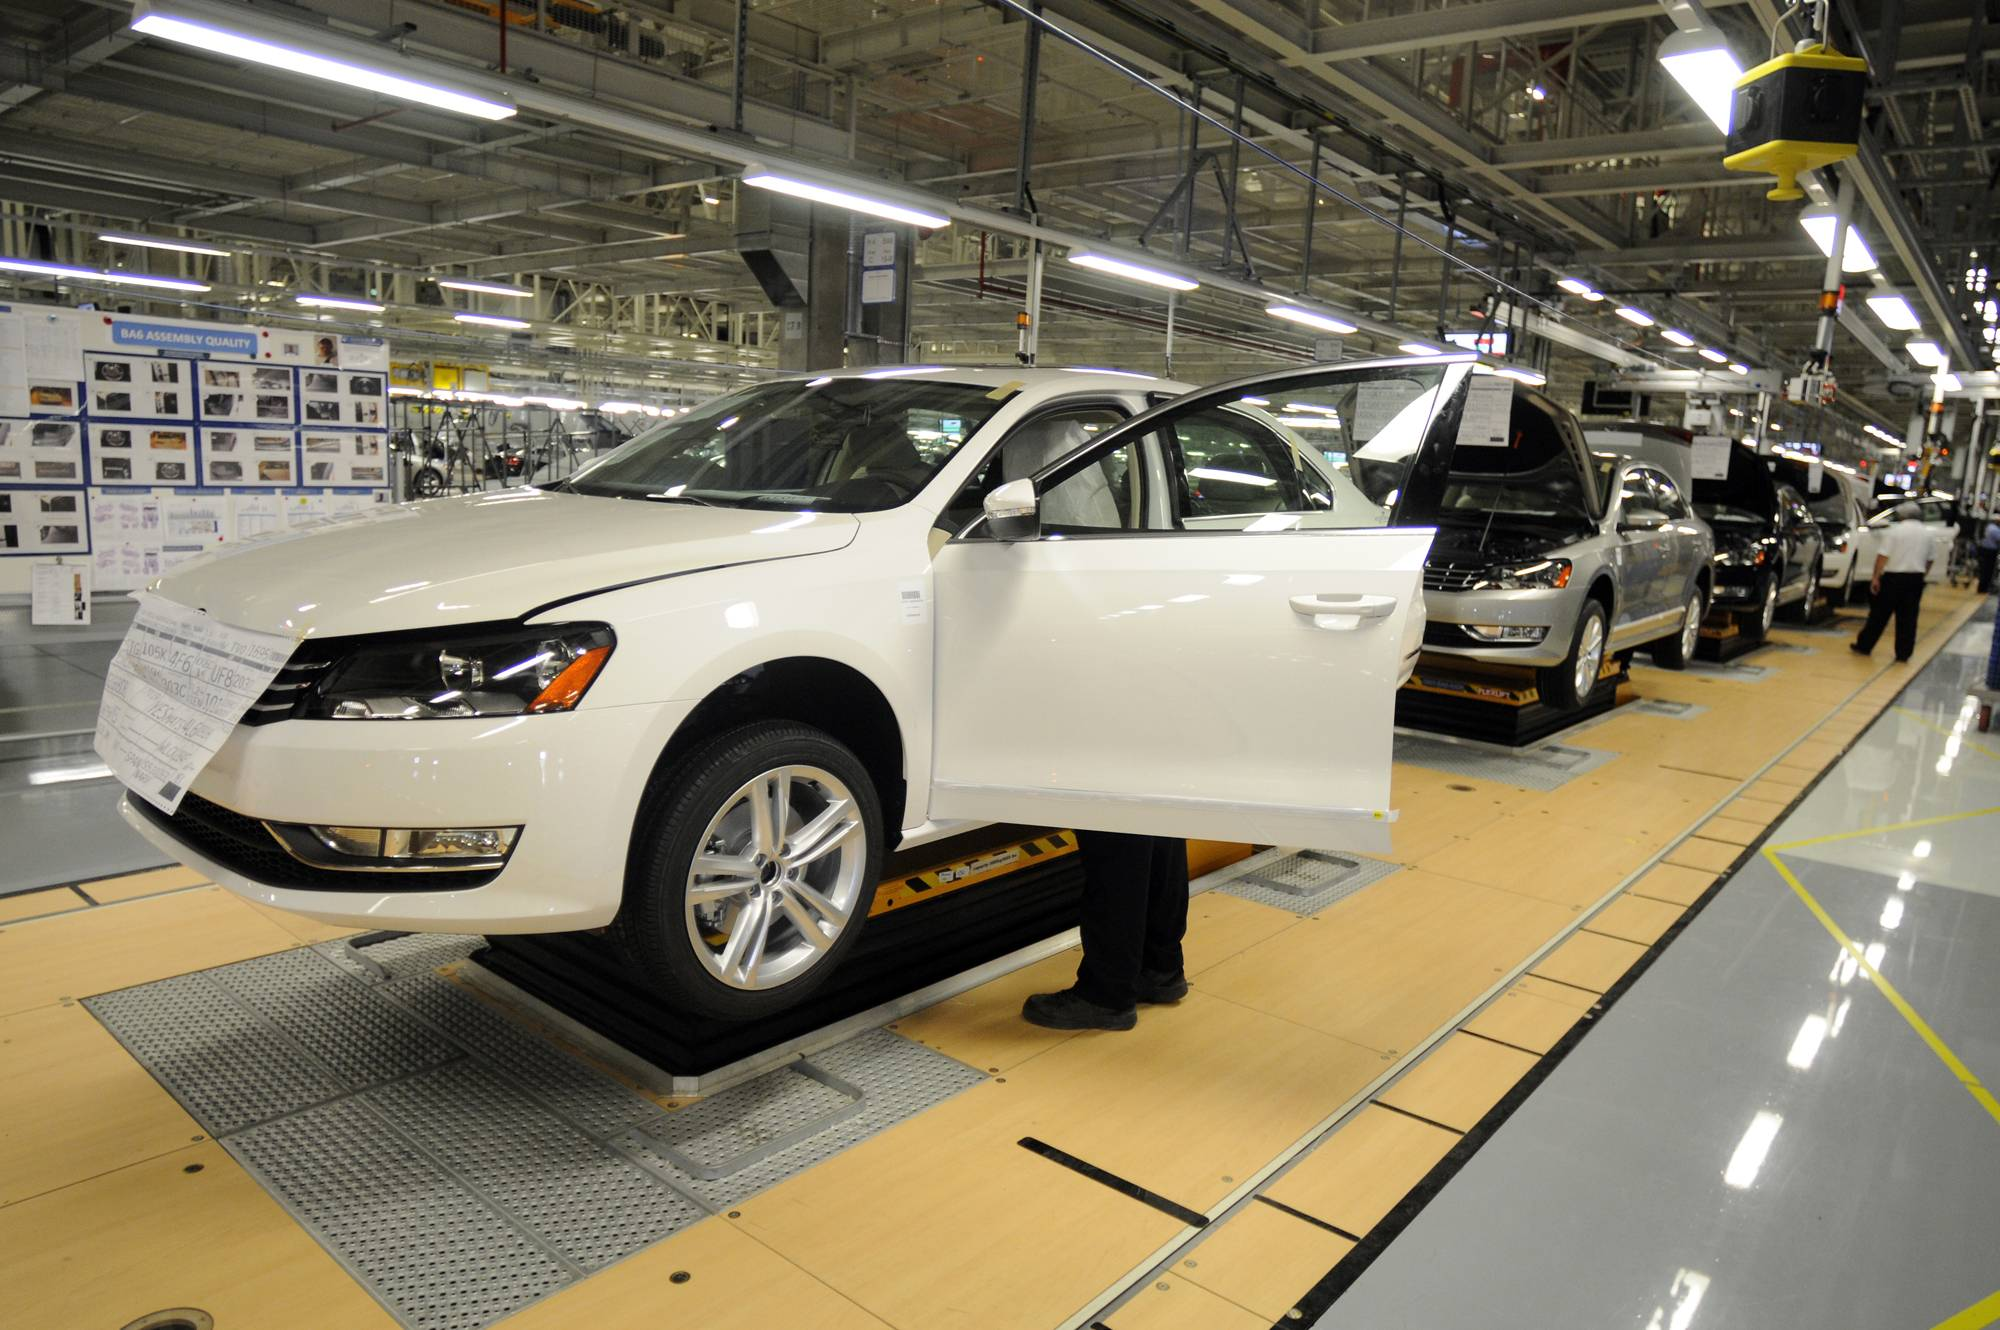 Volkswagen of America Inc. said Friday its June U.S. sales rose 35.1 percent on strong demand for its Jetta sedan and other models.